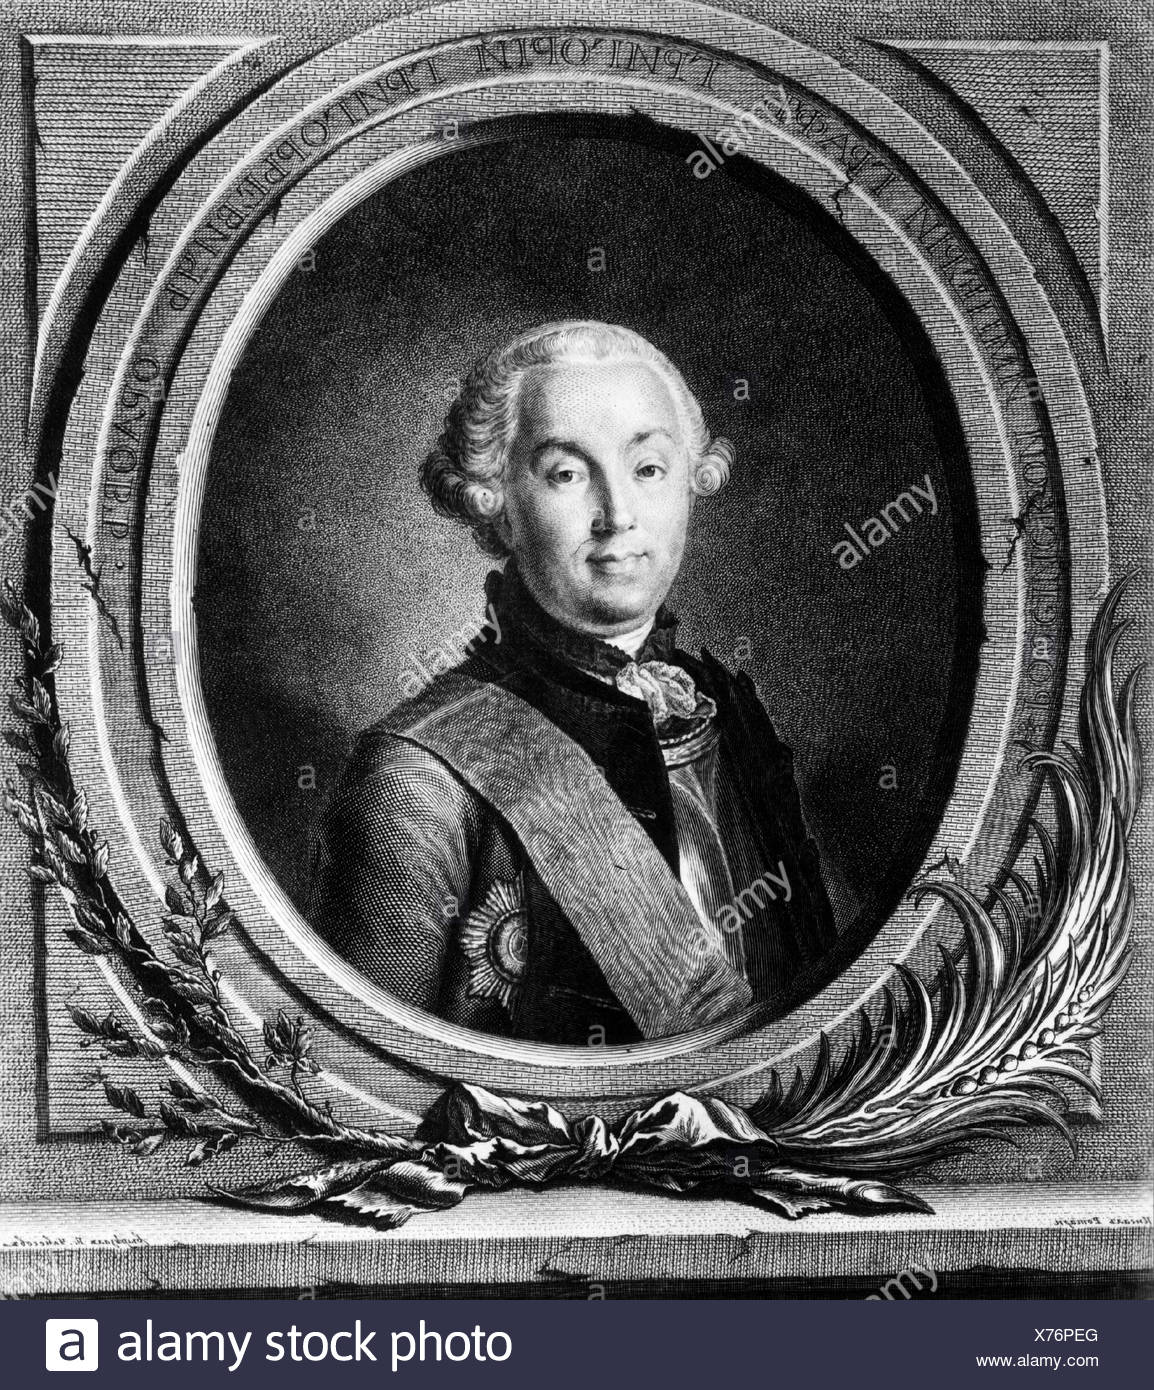 Orlov, Grigory Grigoryevich, 17.10.1734 - 24.4.1783, Russian general, portrait, copper engraving, 18th century, , Artist's Copyright has not to be cleared - Stock Image